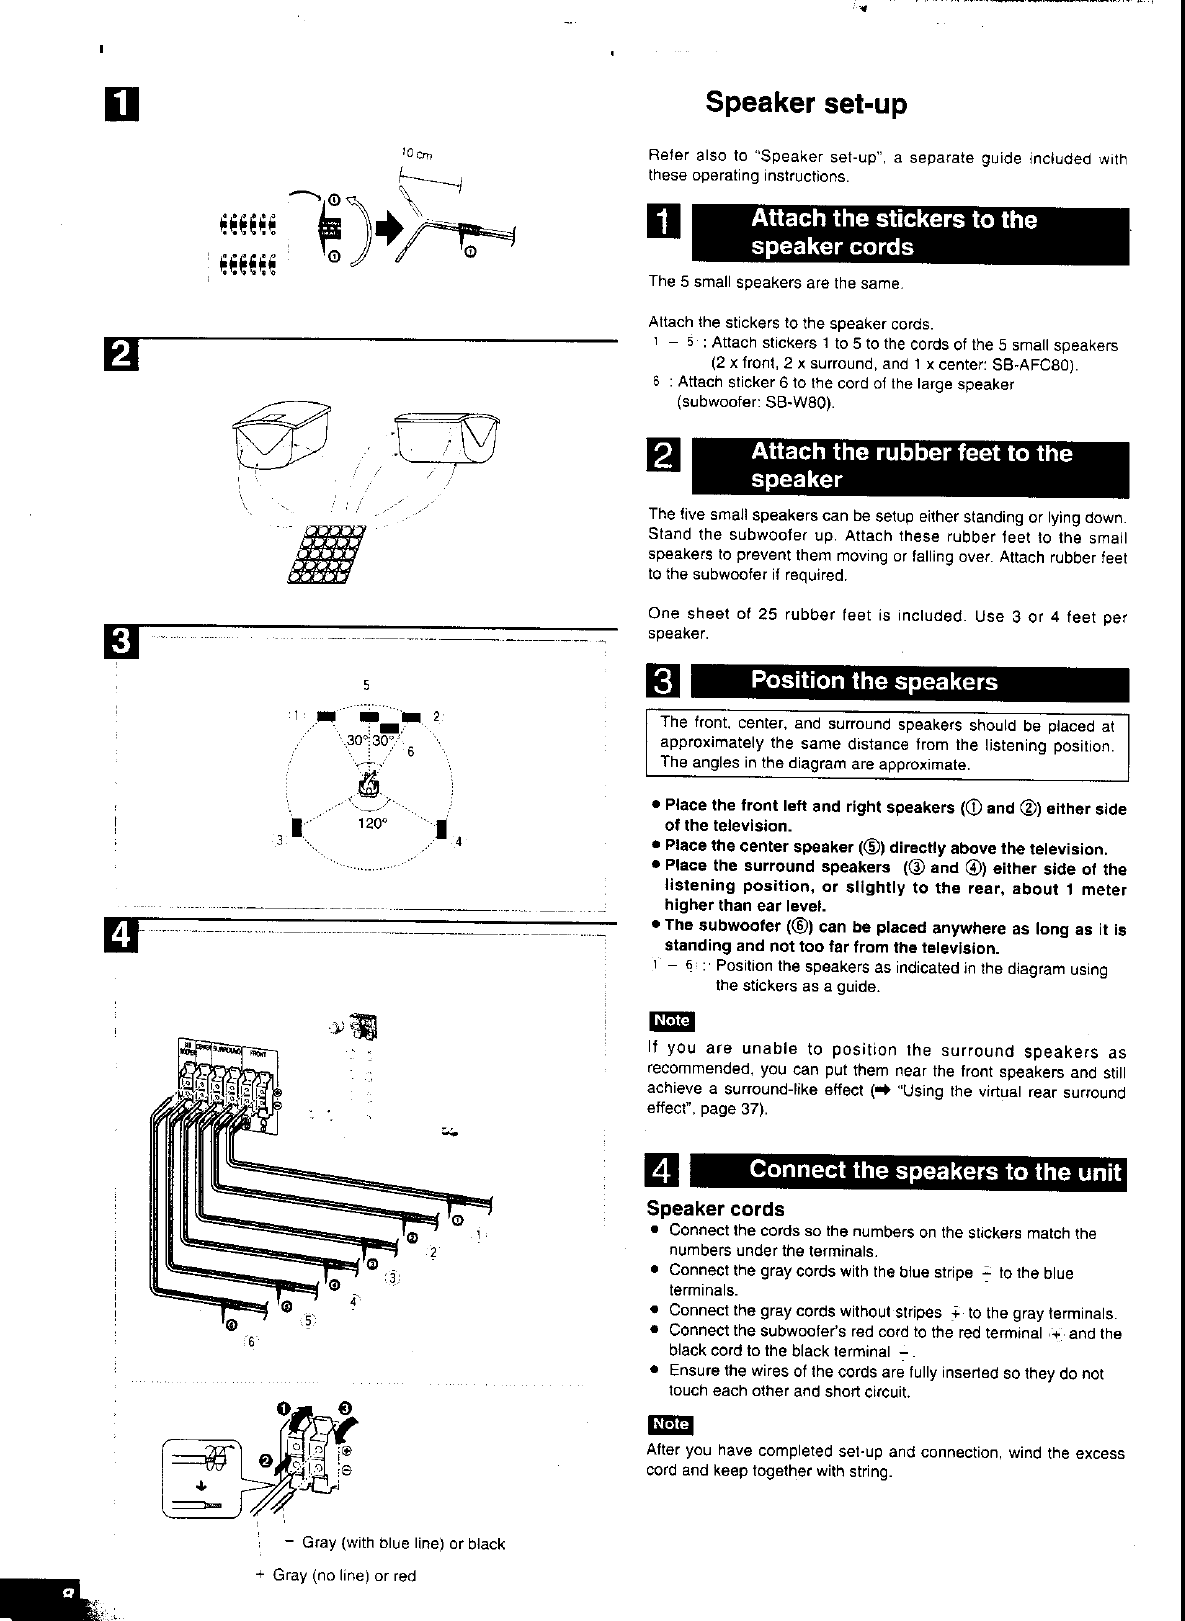 Page 8 of Panasonic Stereo System SC-HT80 User Guide